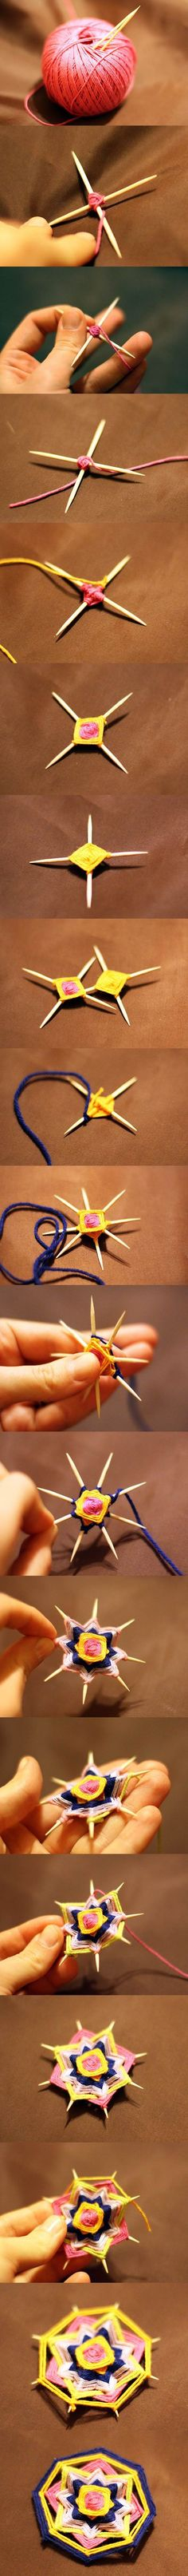 Wonderful DIY 8 Sides Mandala Brooch With Toothpicks | WonderfulDIY.com: